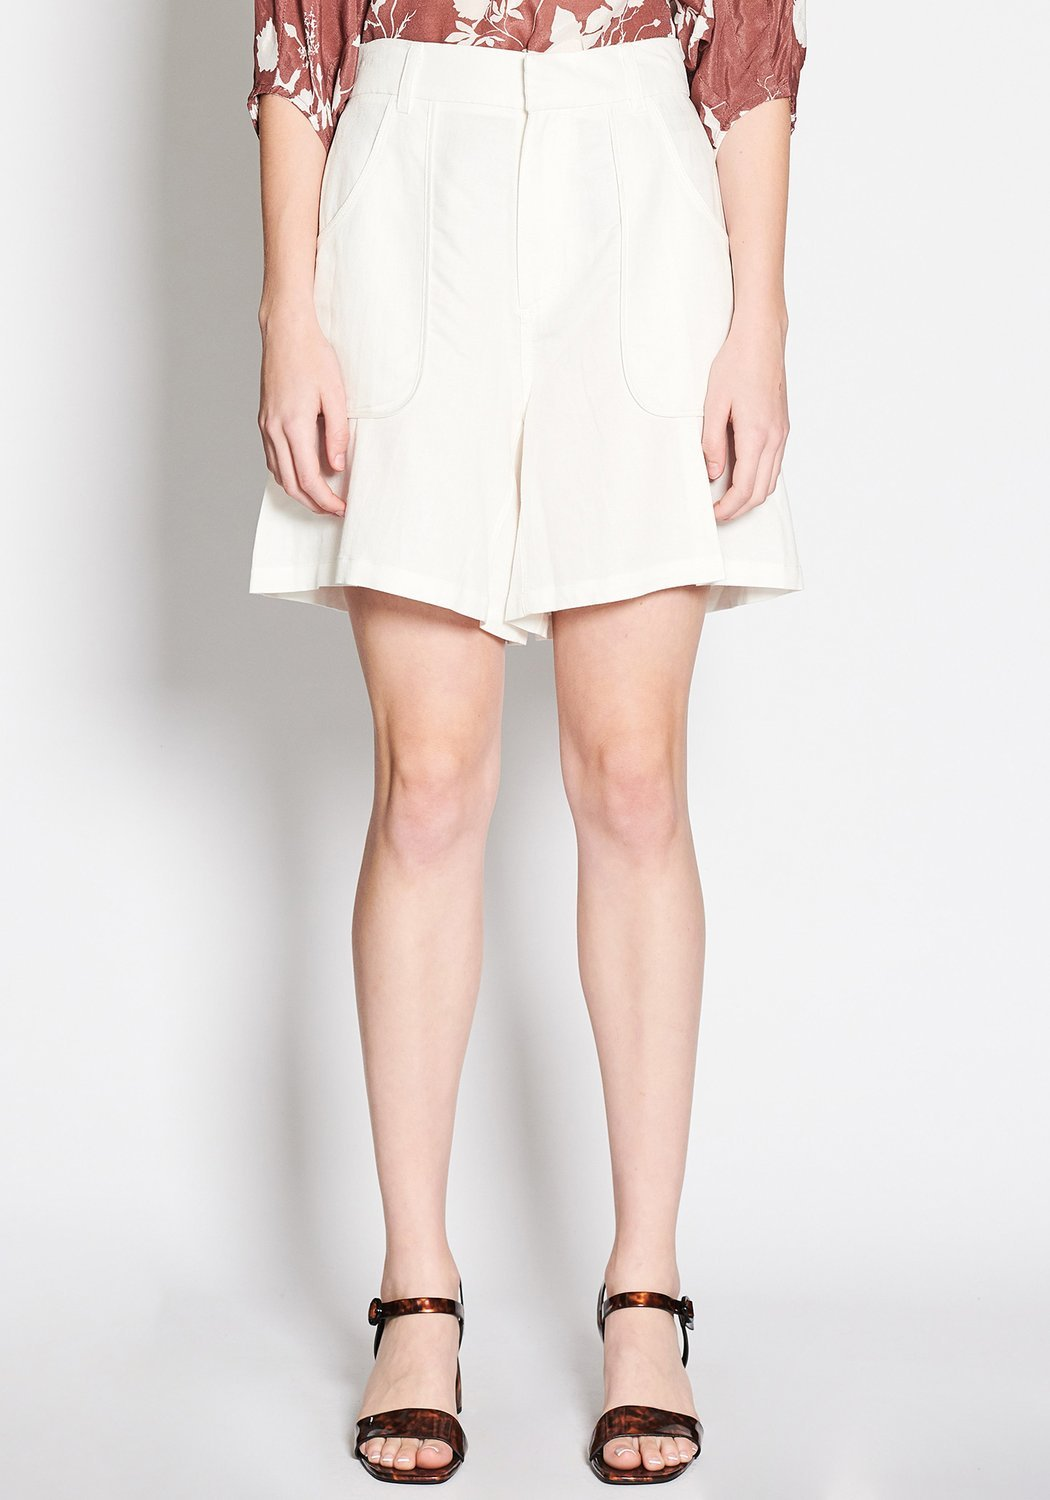 Napa Short White | Shop POL clothing at Wallace and Gibbs NZ